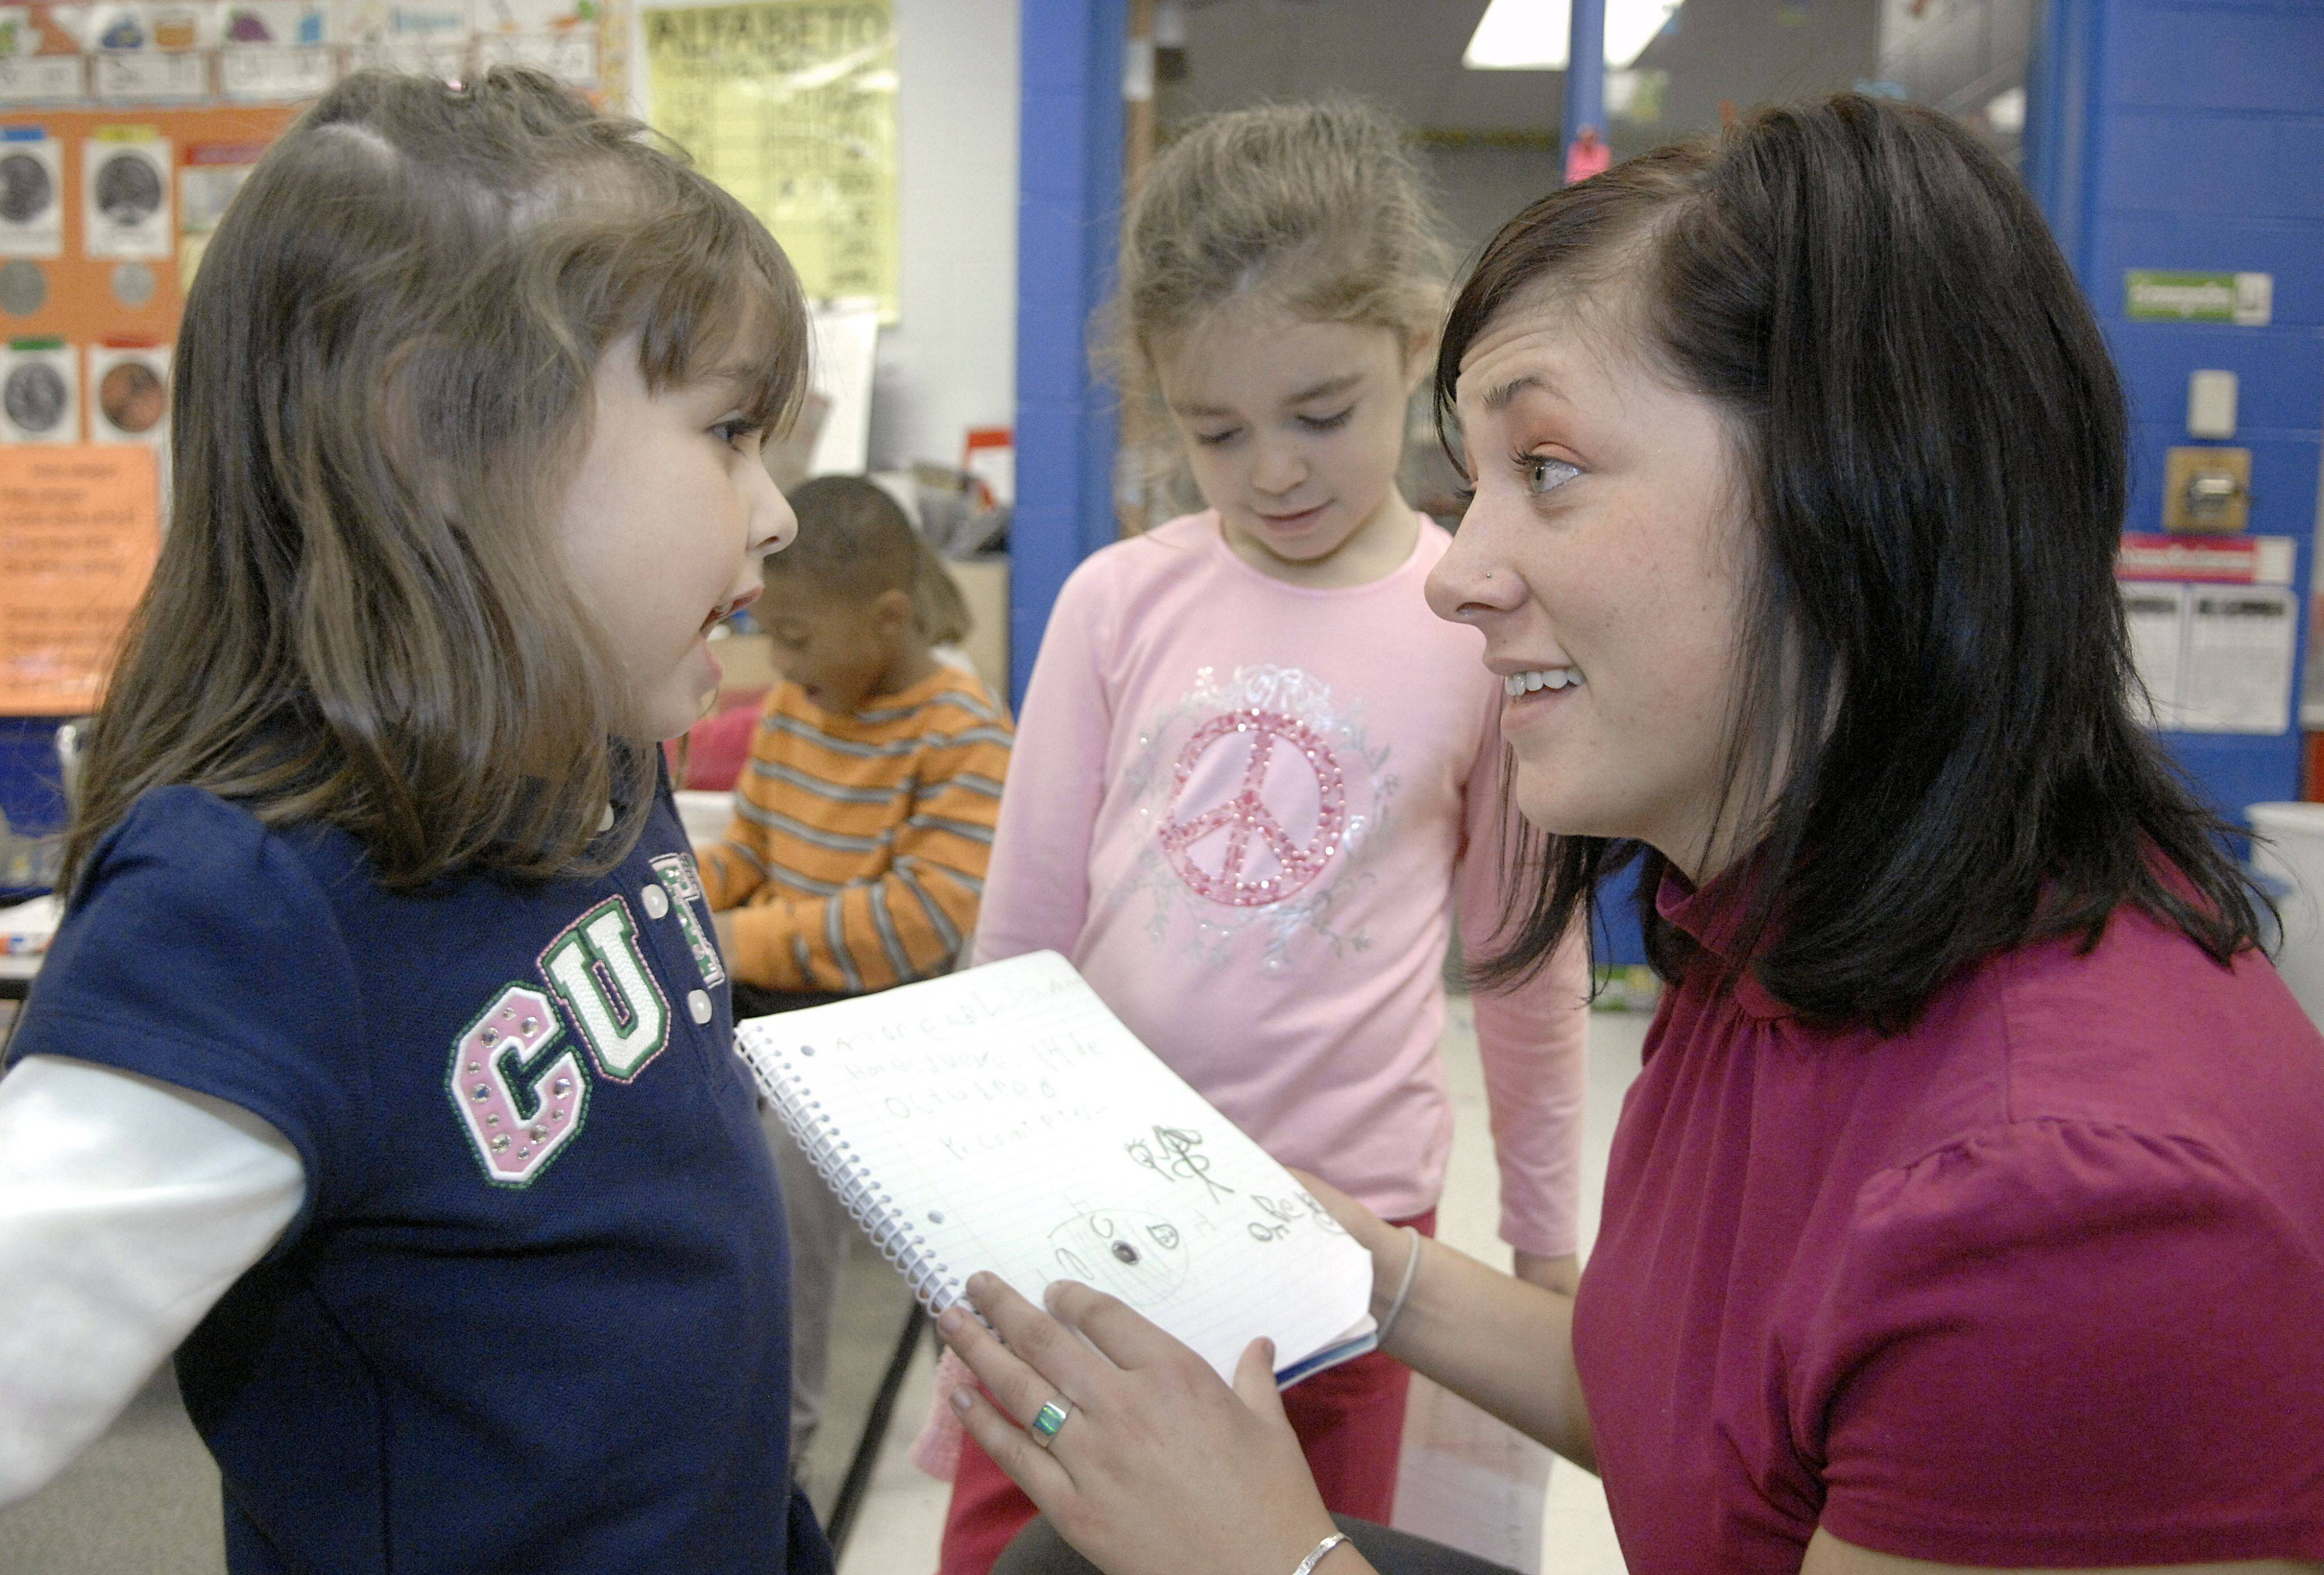 Judson University student Kristen Semrich of Lake in the Hills asks Andrea Llavona what she drew in her journal during Imelda Callazo's kindergarten class at Liberty Elementary School in Carpentersville. Classmate Sarina Simonelli waits her turn. Semrich, who is studying elementary education, helps in the bilingual class a few times a week.